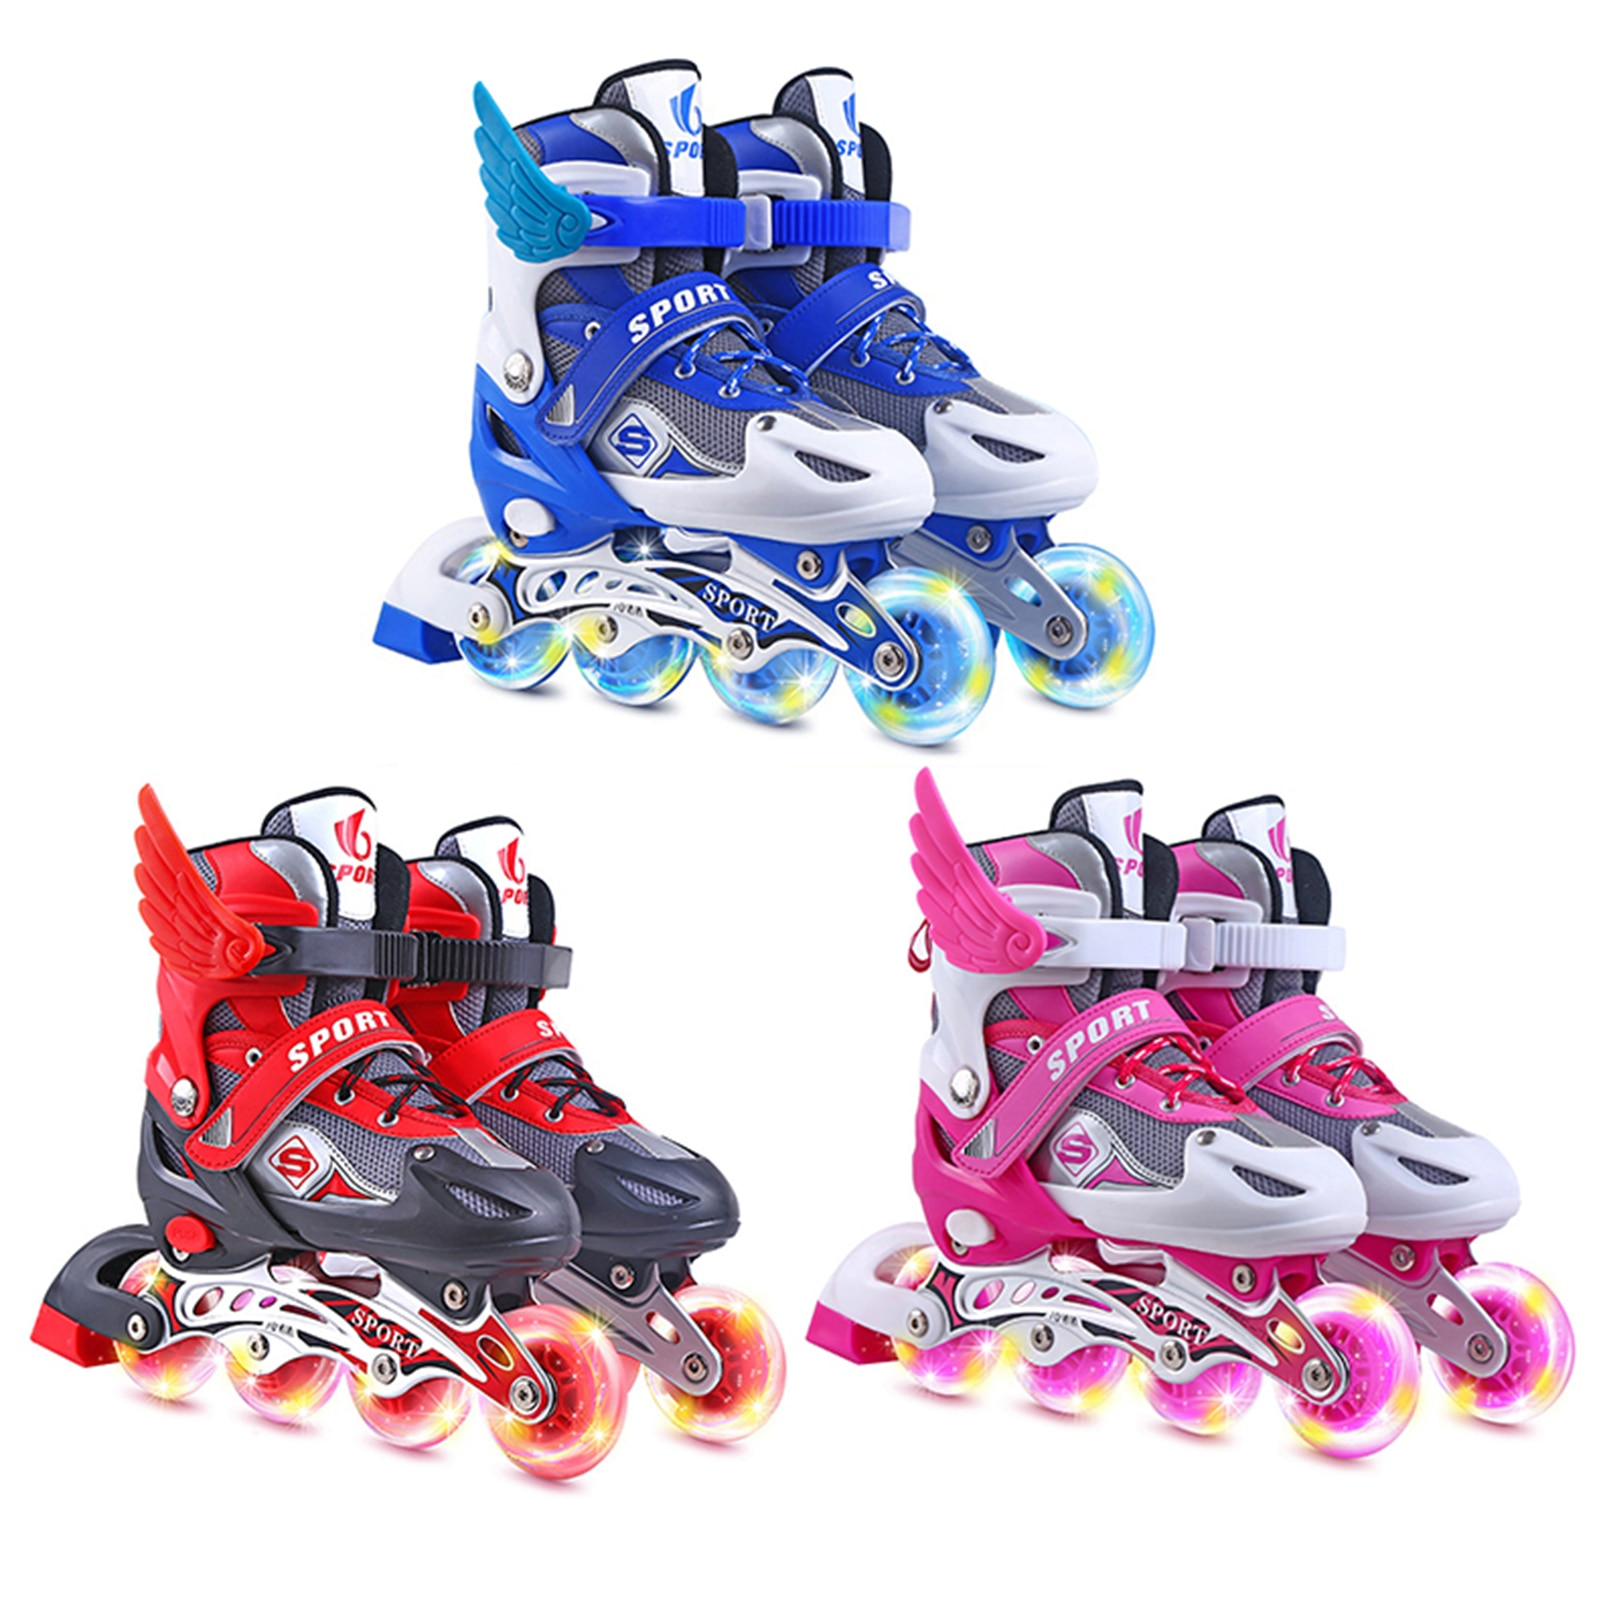 Inline Skates Children Roller Skating Shoes Sneakers With Luminous High Elastic PU Wheel Flash Wheels Wonderful Gift For Kids